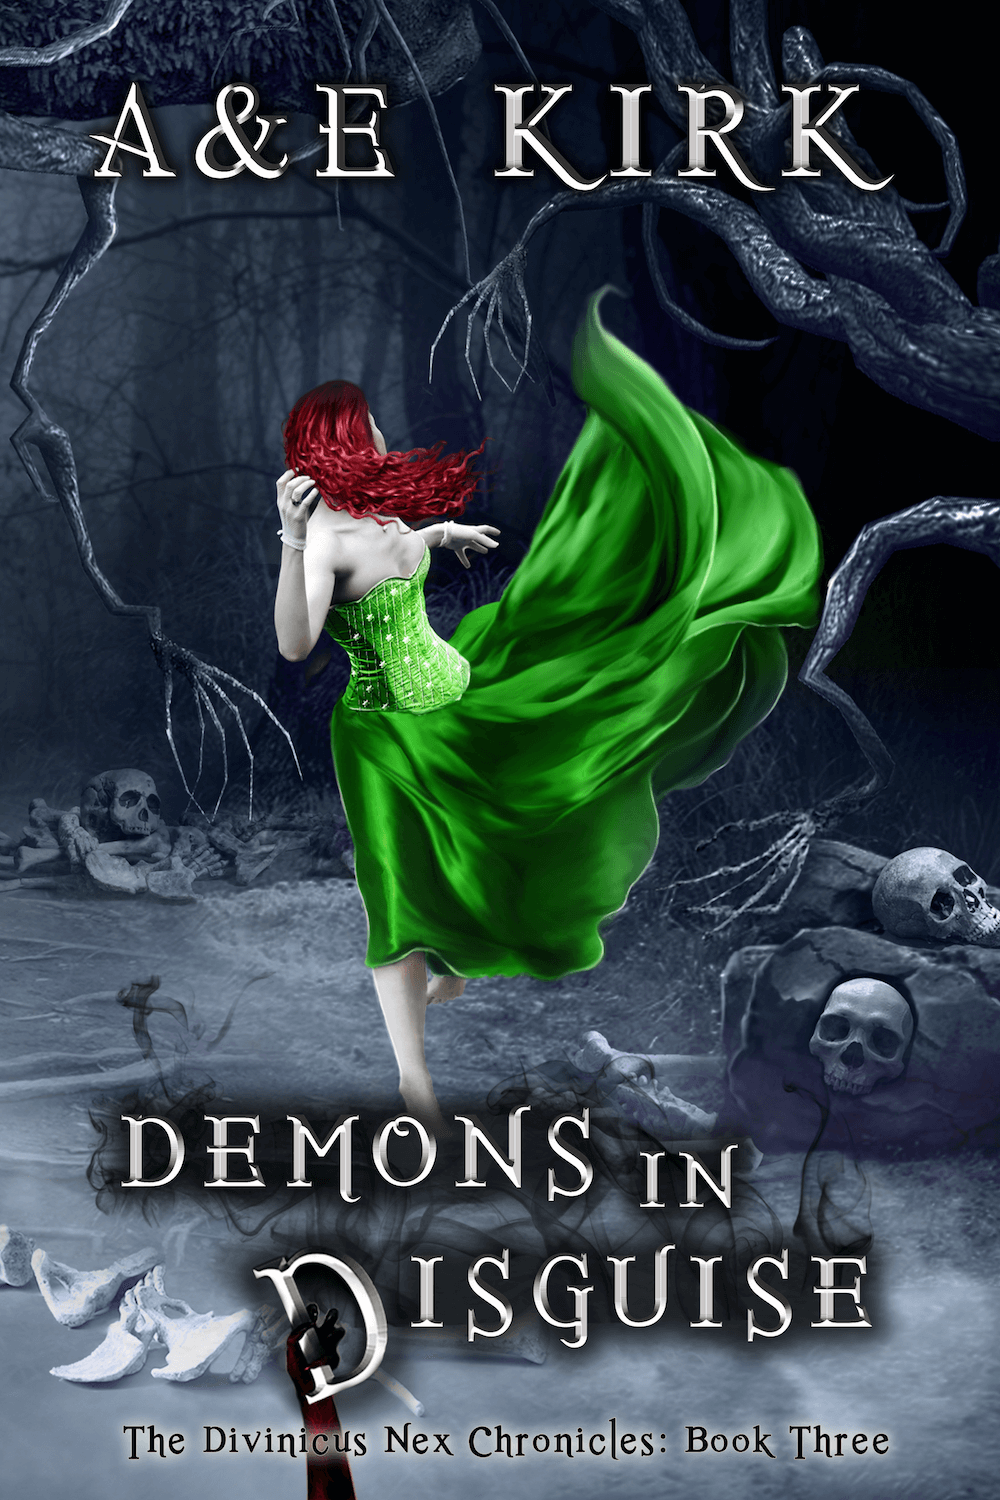 Demons In Disguise by A & E Kirk